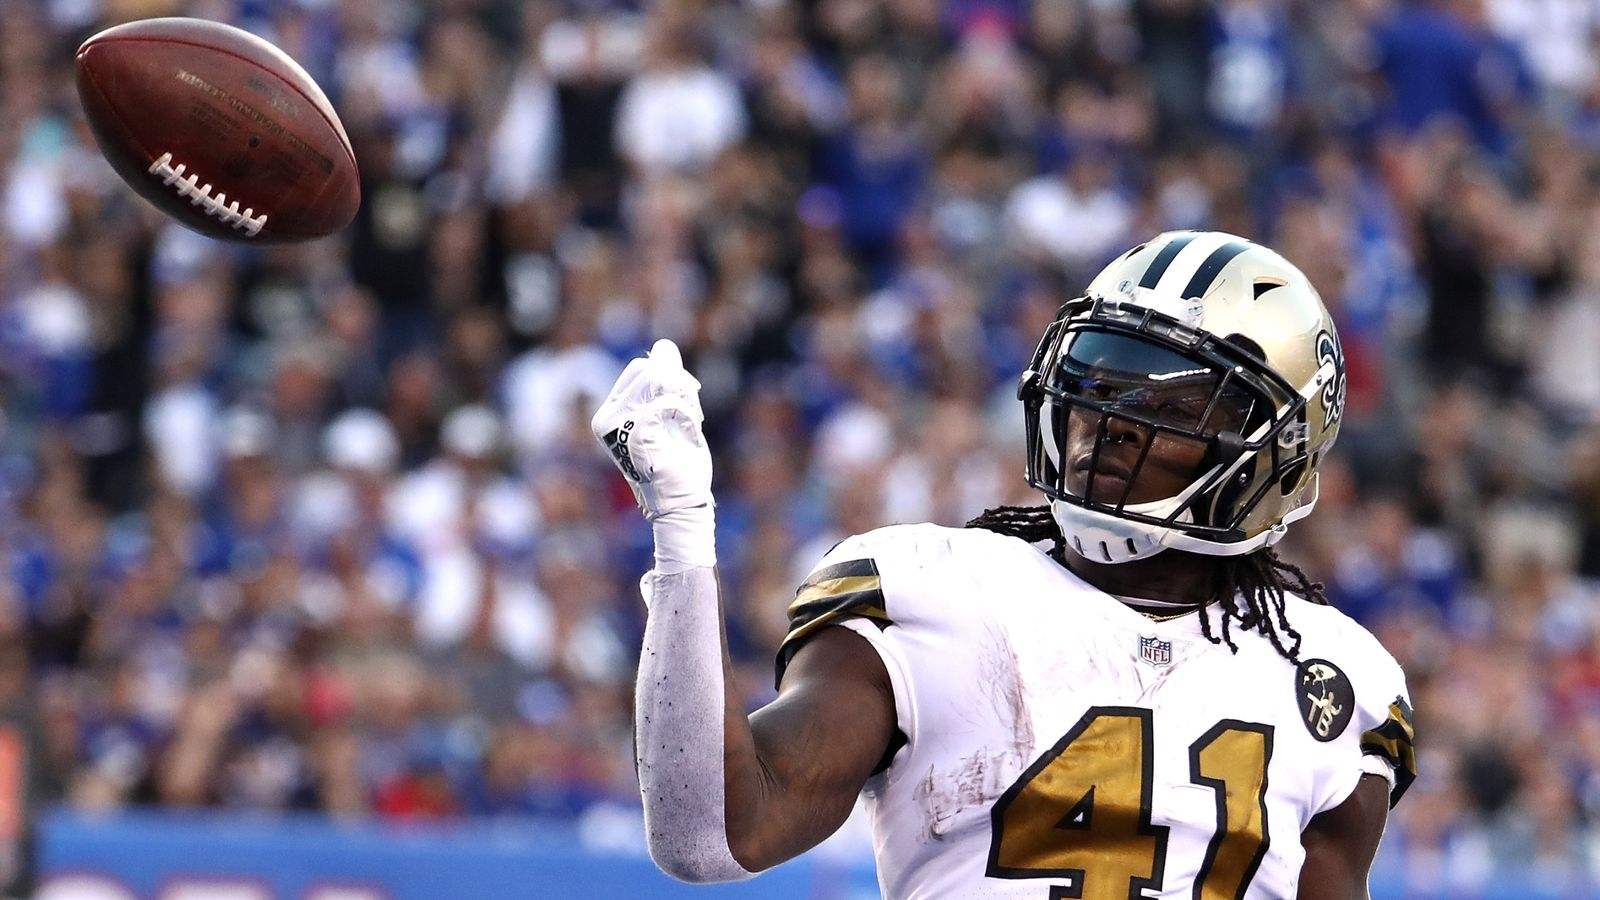 New Orleans Saints @ Dallas Cowboys: Thursday night NFL live on Sky Sports